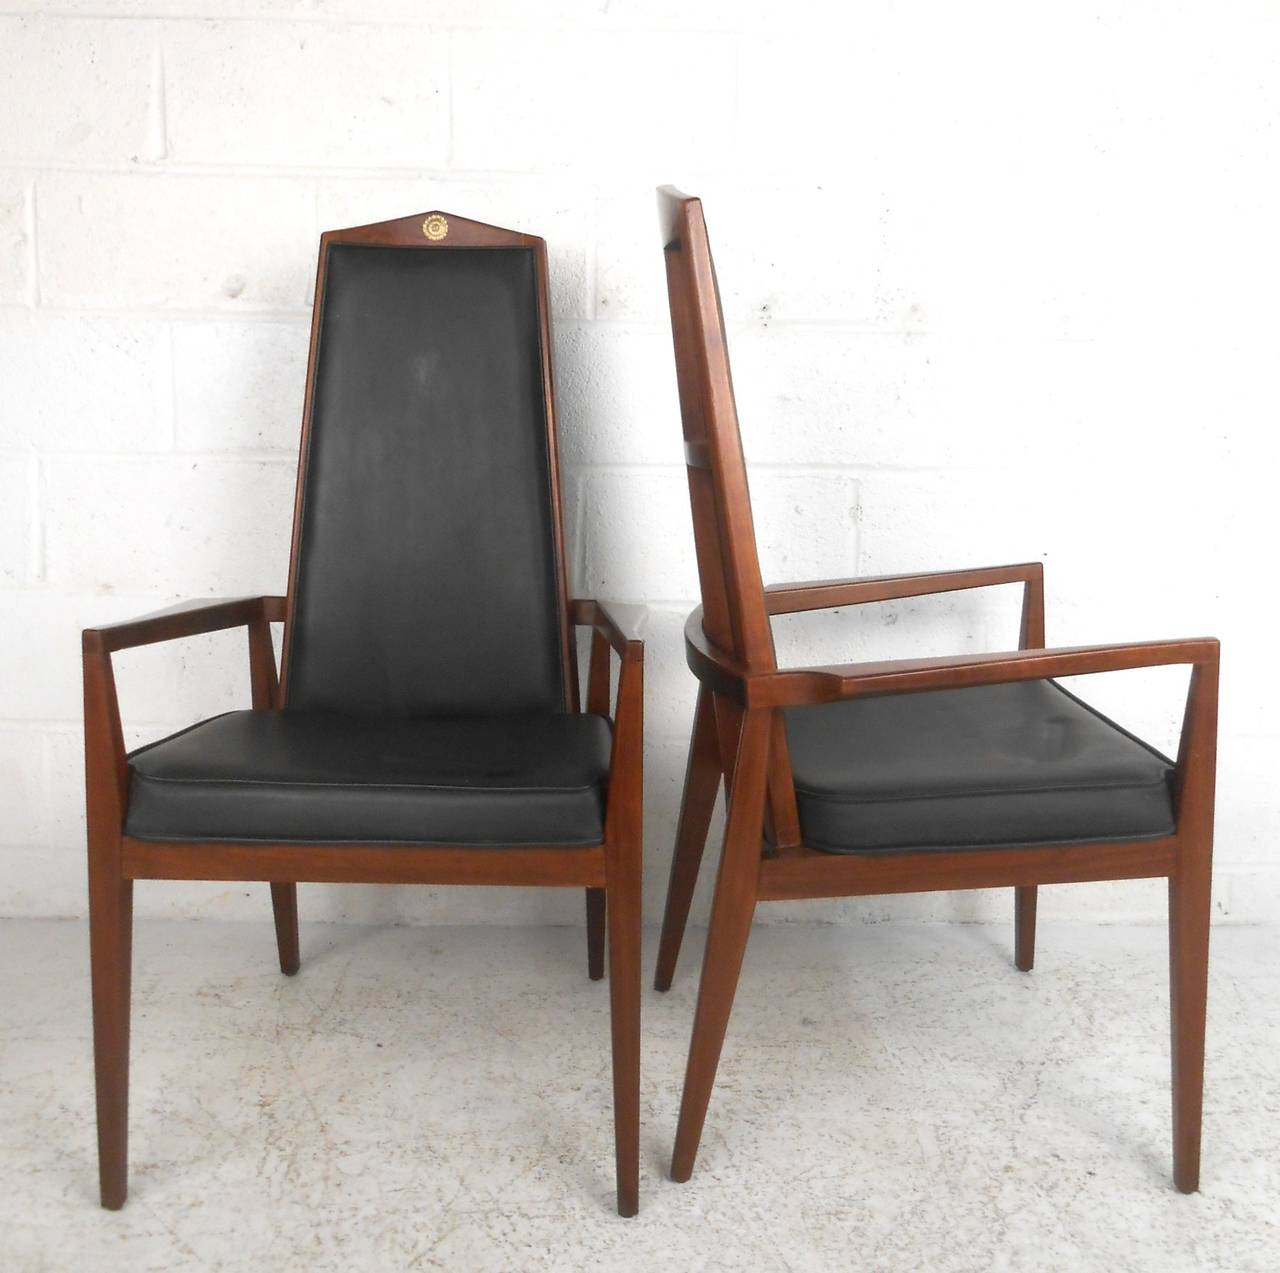 dining room high back chairs wooden bankers chair with arms unique mid century modern set table